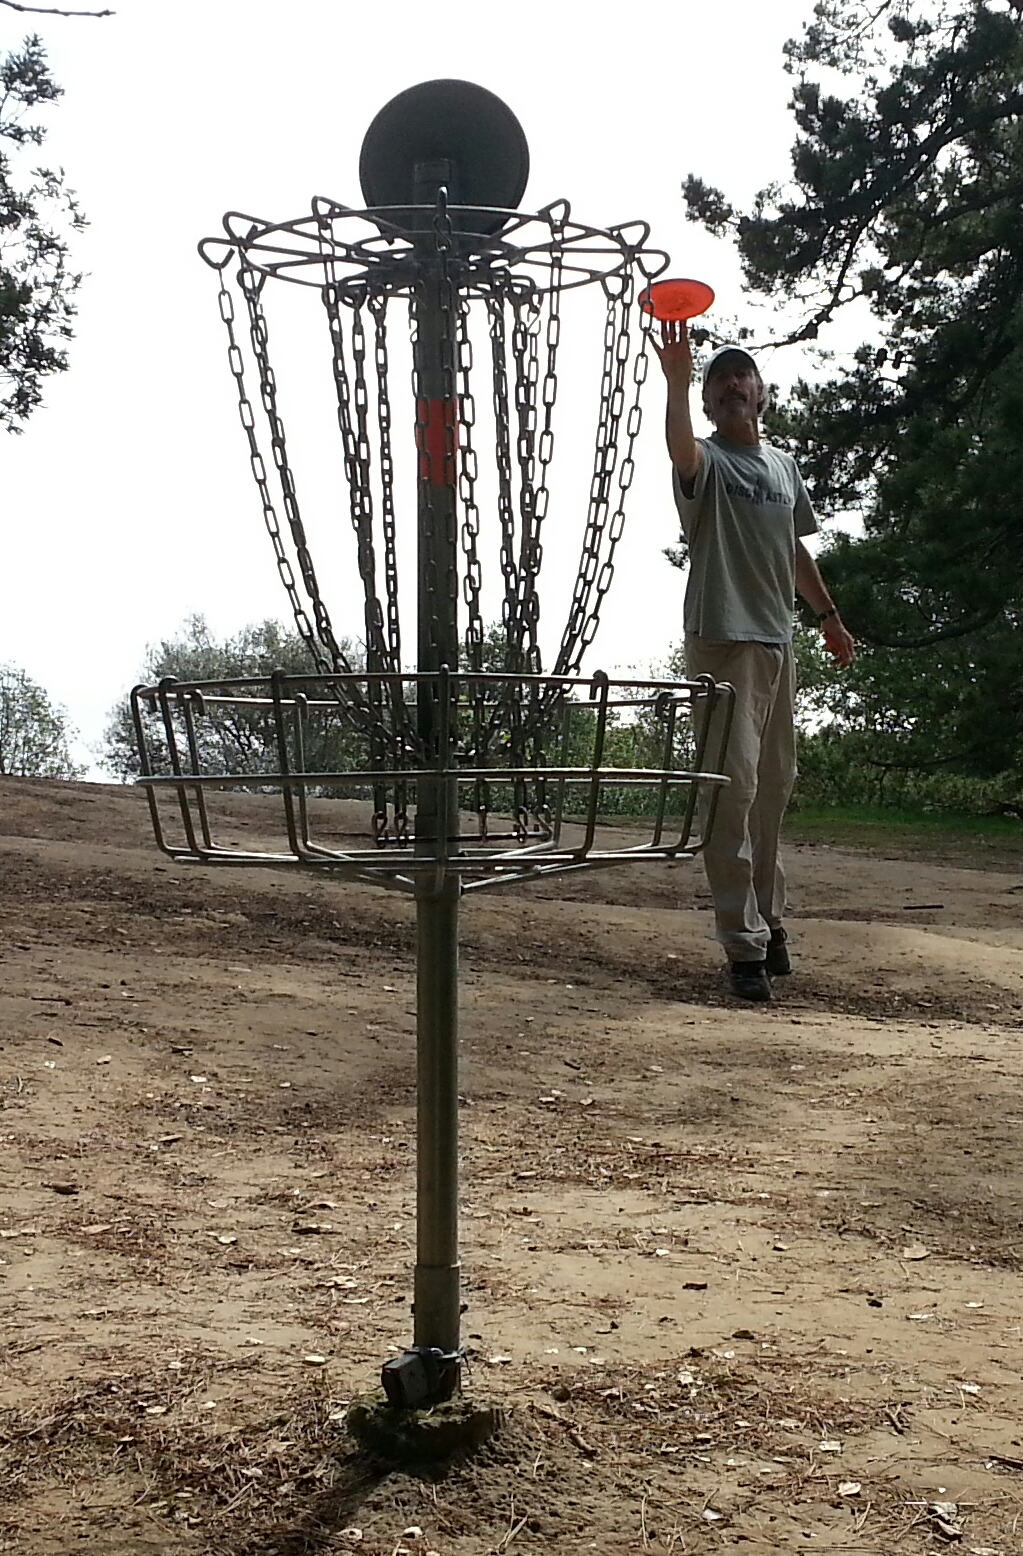 Disc golf lingo: many groups even have their own dialect